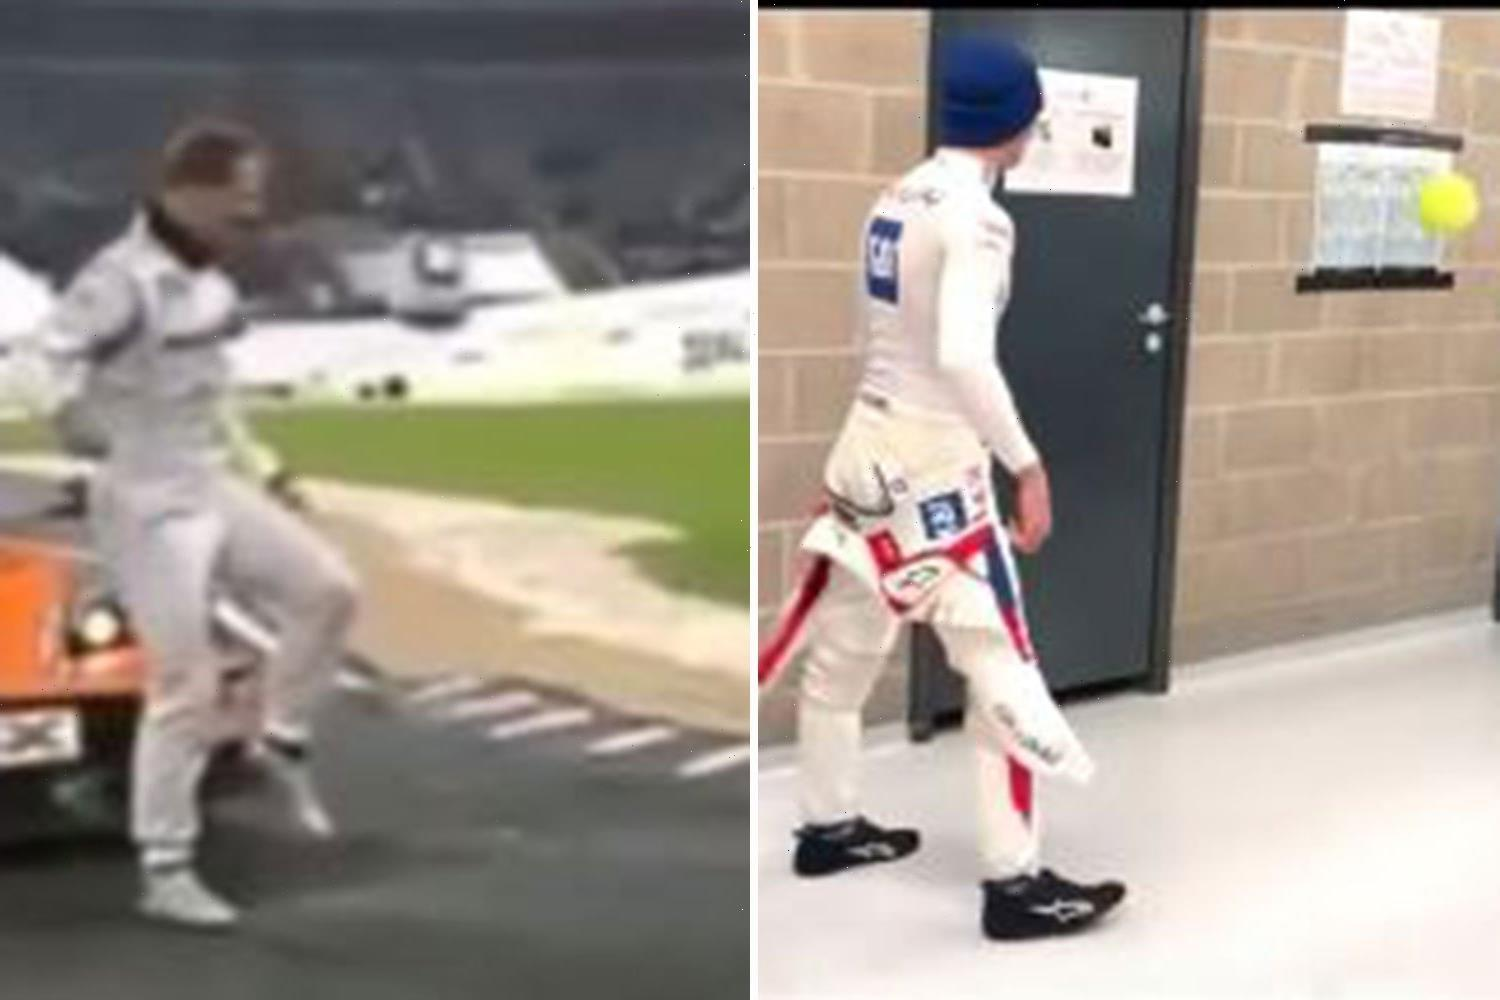 Mick Schumacher and Sebastian Vettel play football during F1 rain delay in poignant nod to what dad Michael used to do